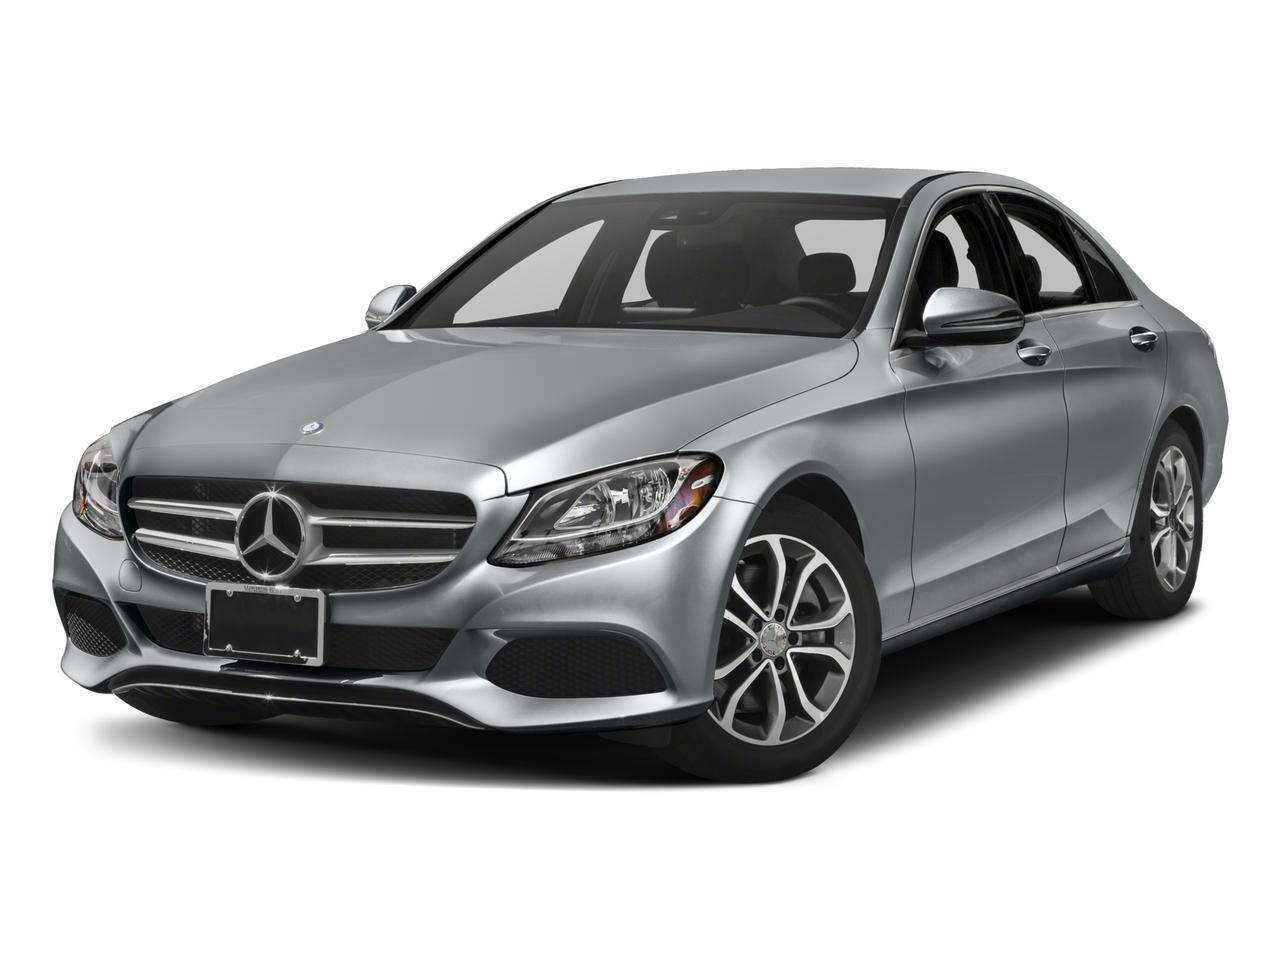 2017 Mercedes-Benz C-Class Vehicle Photo in Austin, TX 78759